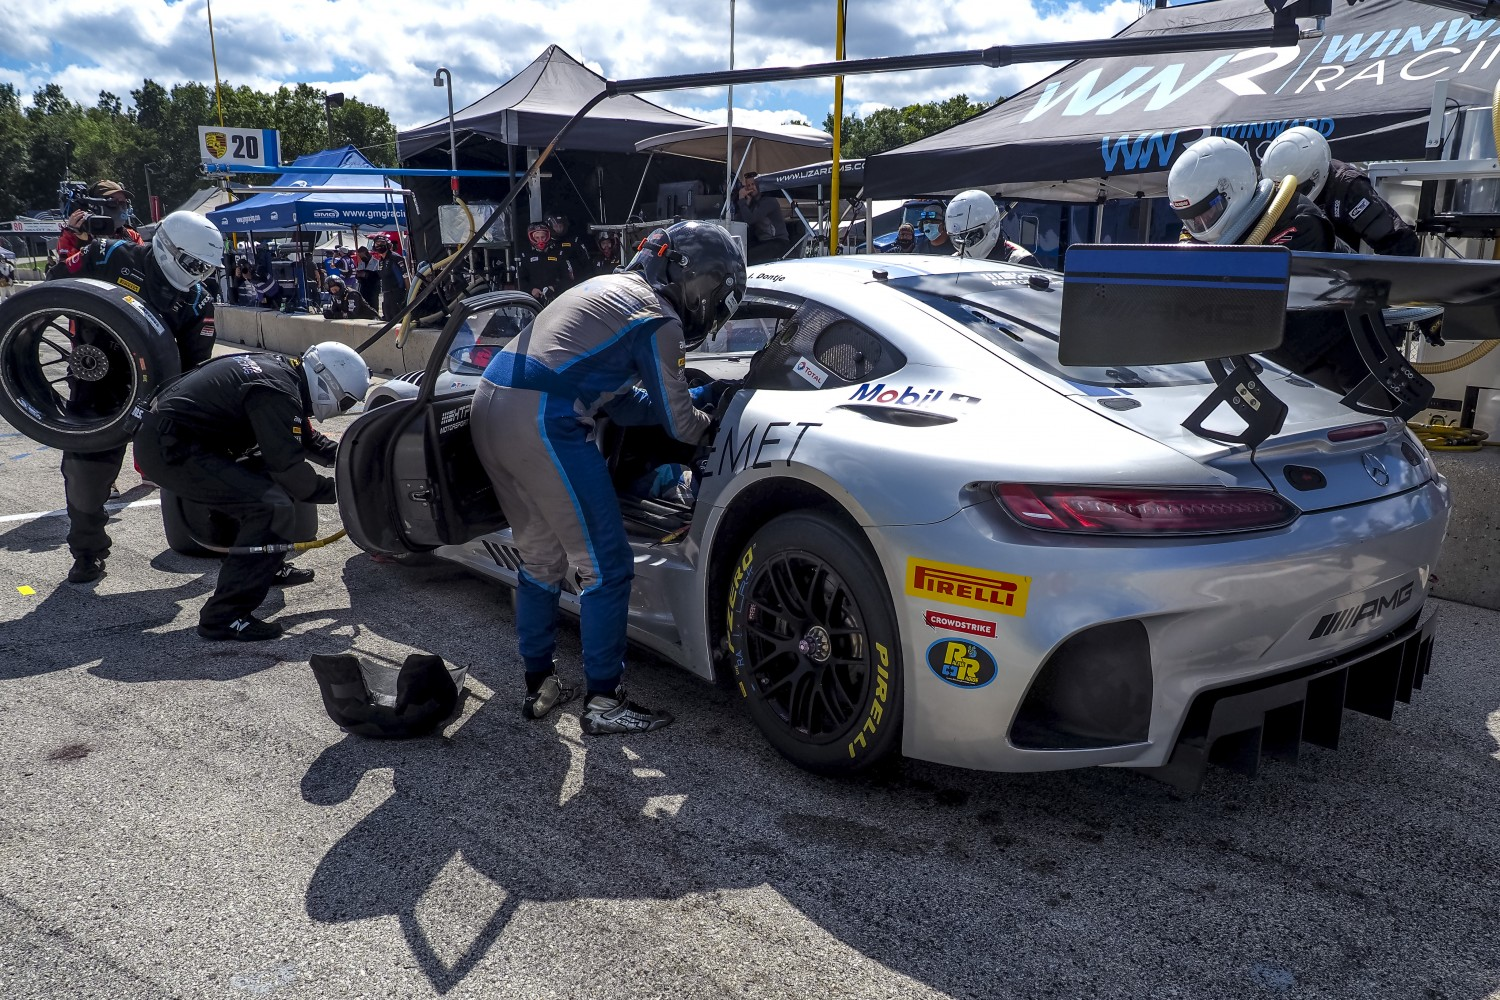 #33 Mercedes-AMG GT3 of Indy Dontje and Russell Ward, Winward Racing, GT3 Pro-Am, SRO America, Road America, Elkhart Lake, WI, July 2020.